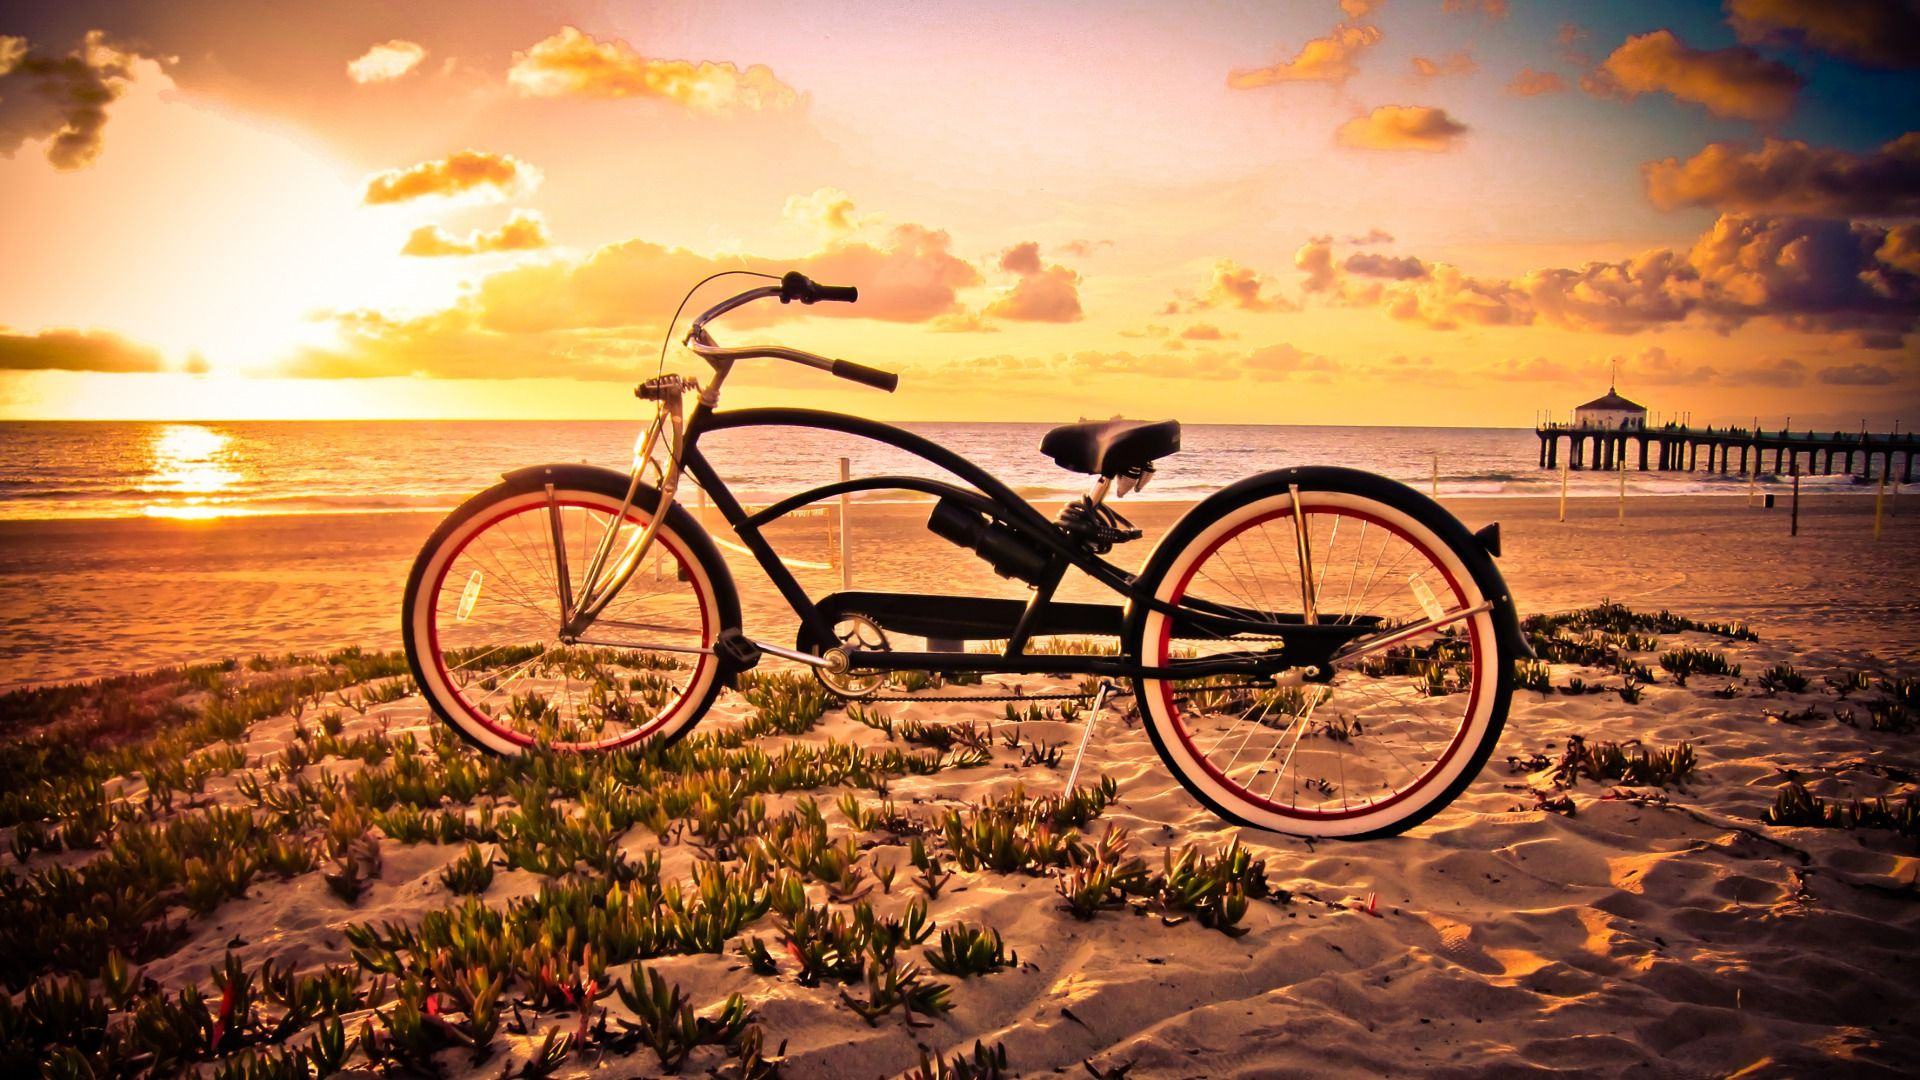 Vintage Motorcycle Photography Free Download Wallpaper Bicycle Wallpaper Motorcycle Photography Bicycle